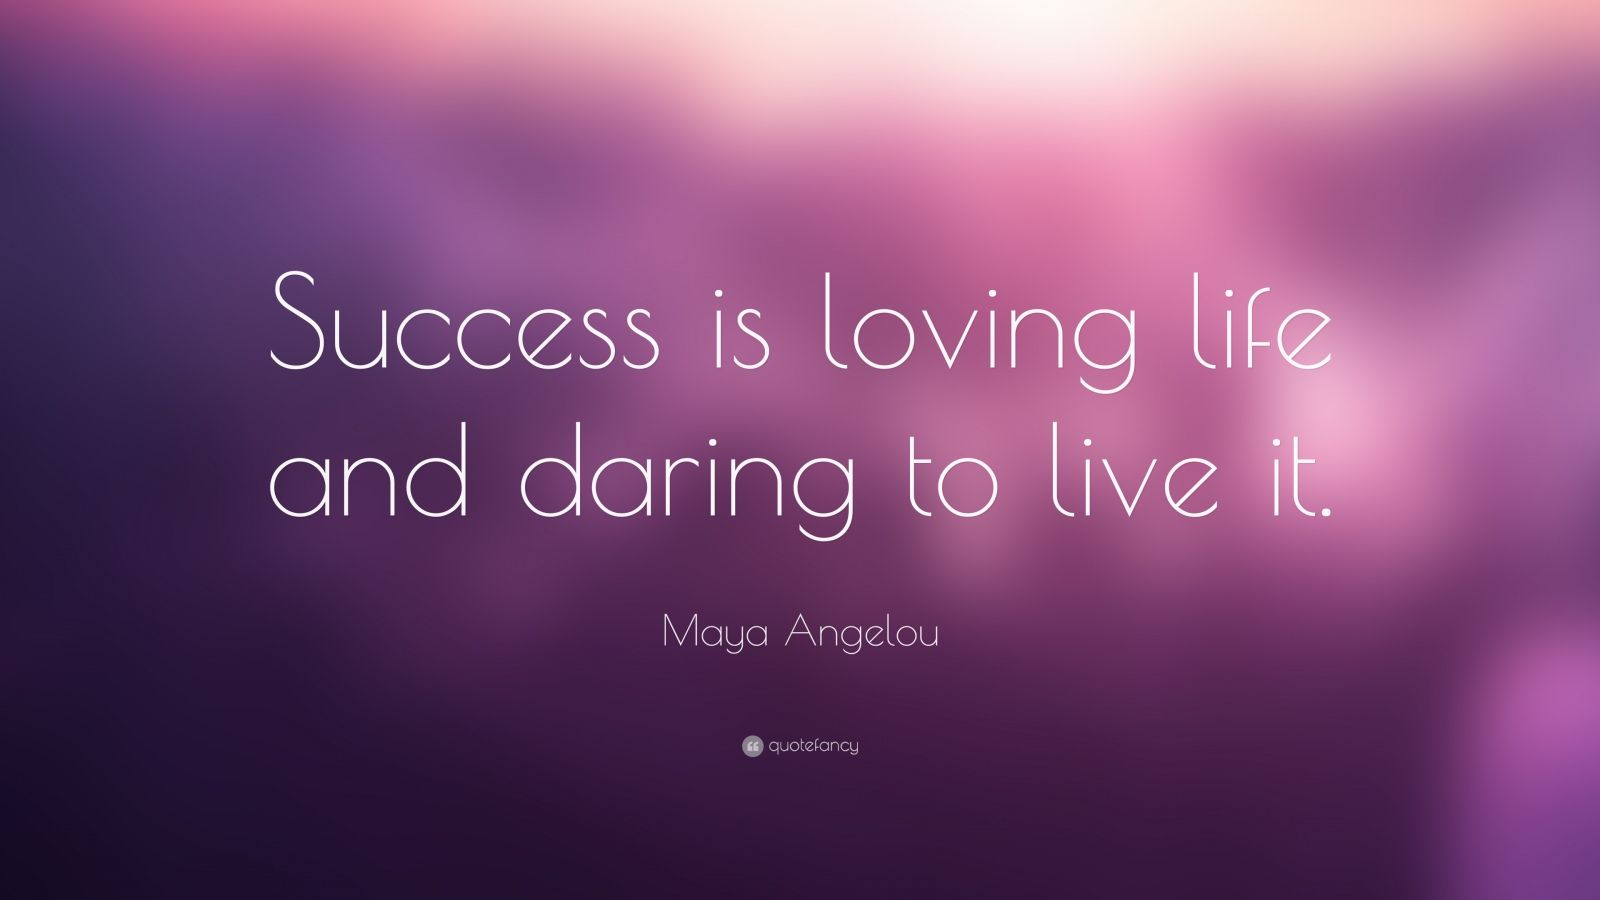 Maya Angelou Quotes About Love Maya Angelou Quotes 100 Wallpapers  Quotefancy